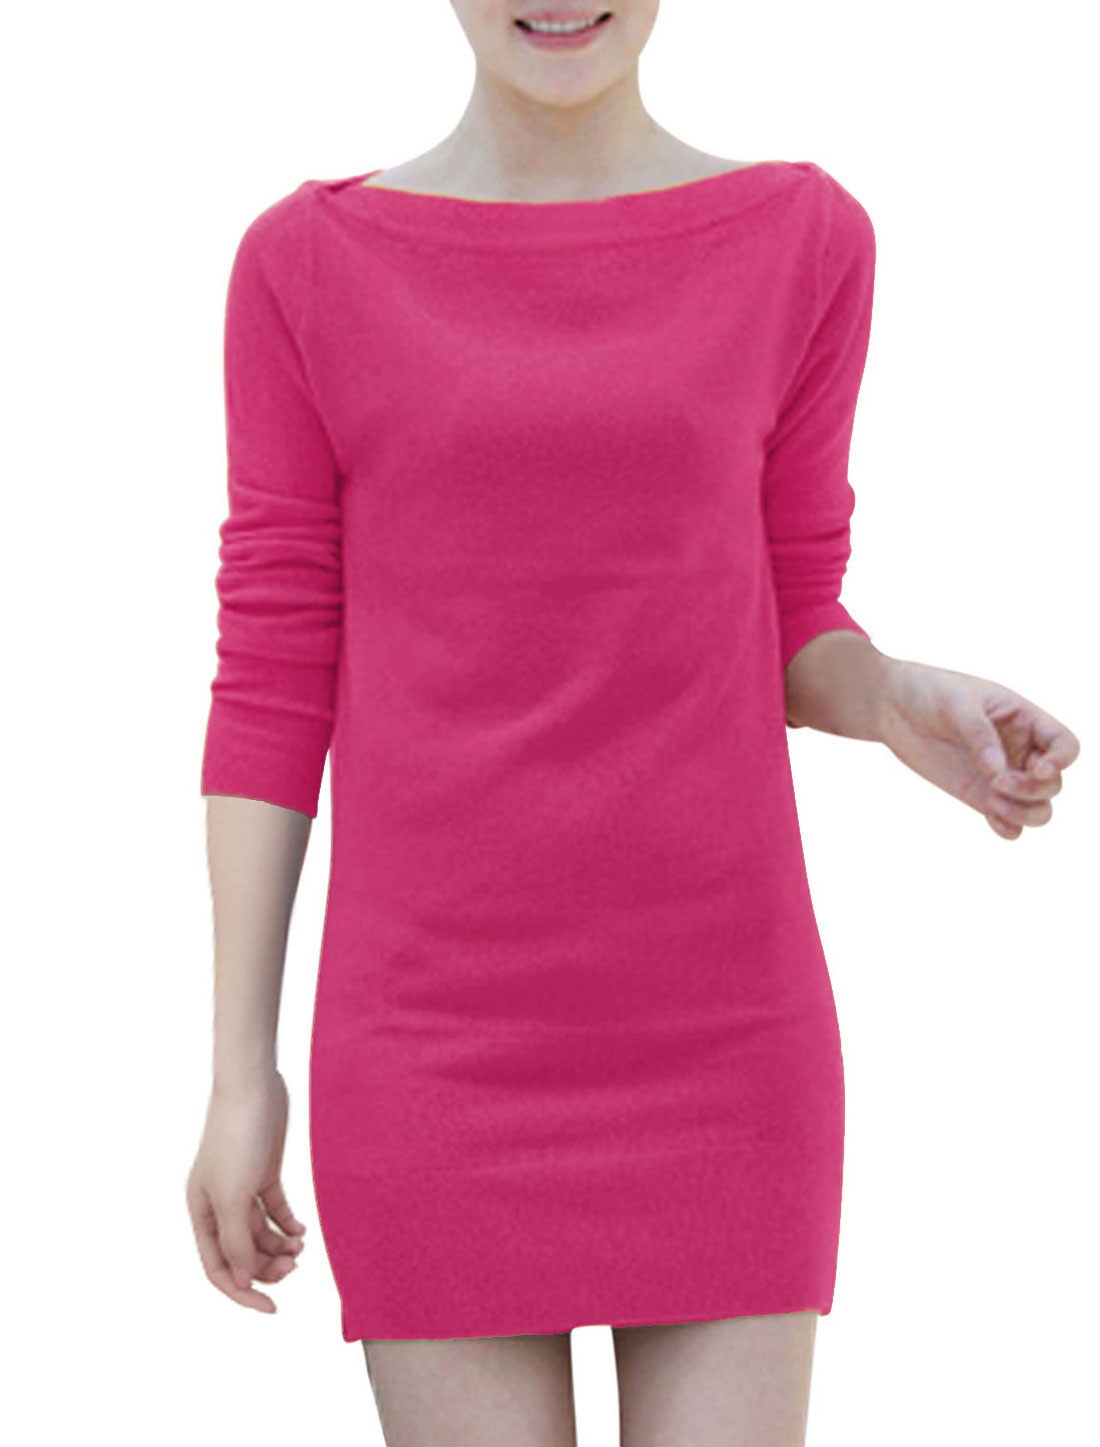 Lady Long Sleeves Boat Neck Casual Stretchy Dresses Fuchsia S